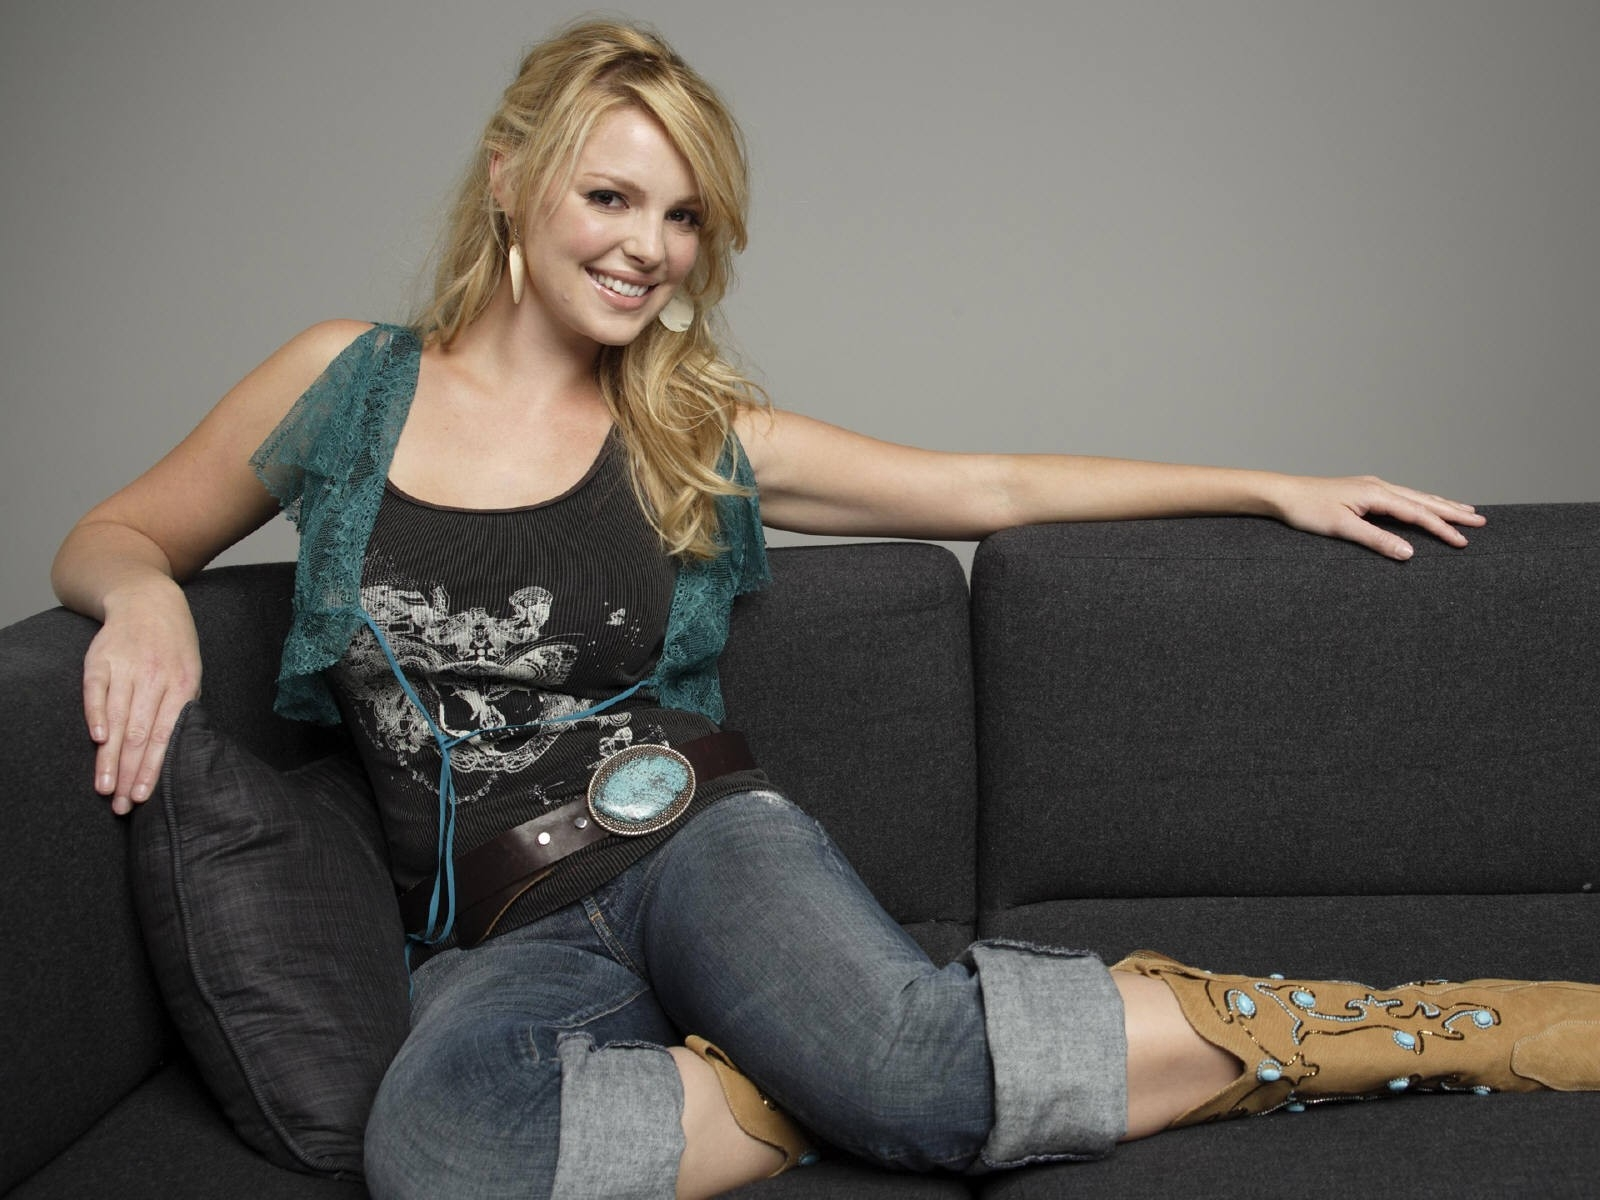 Wallpaper di Katherine Heigl in denim